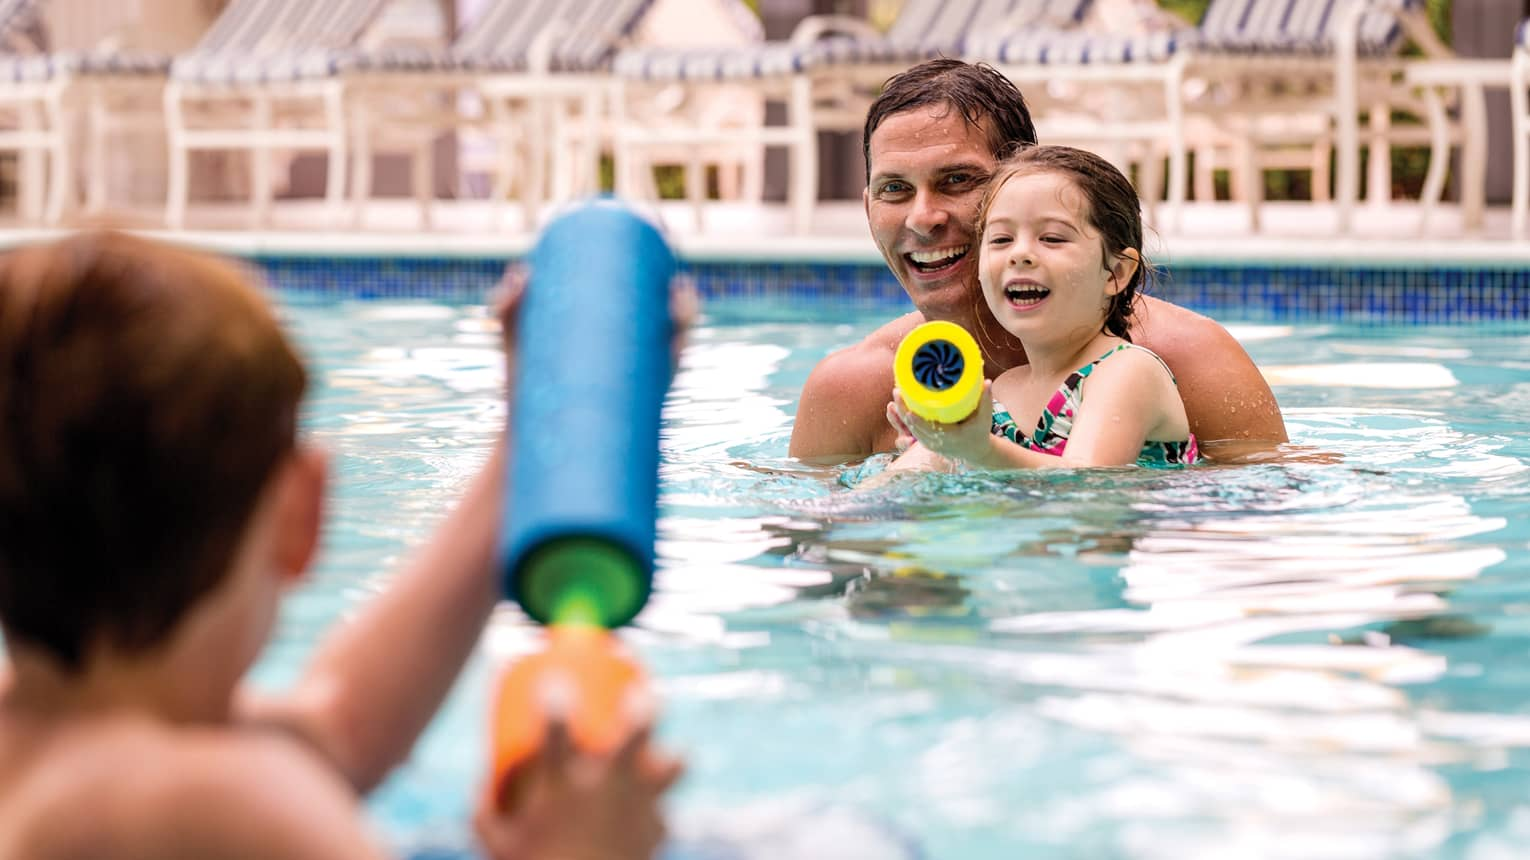 Smiling family swimming in outdoor pool squirt water guns at each other